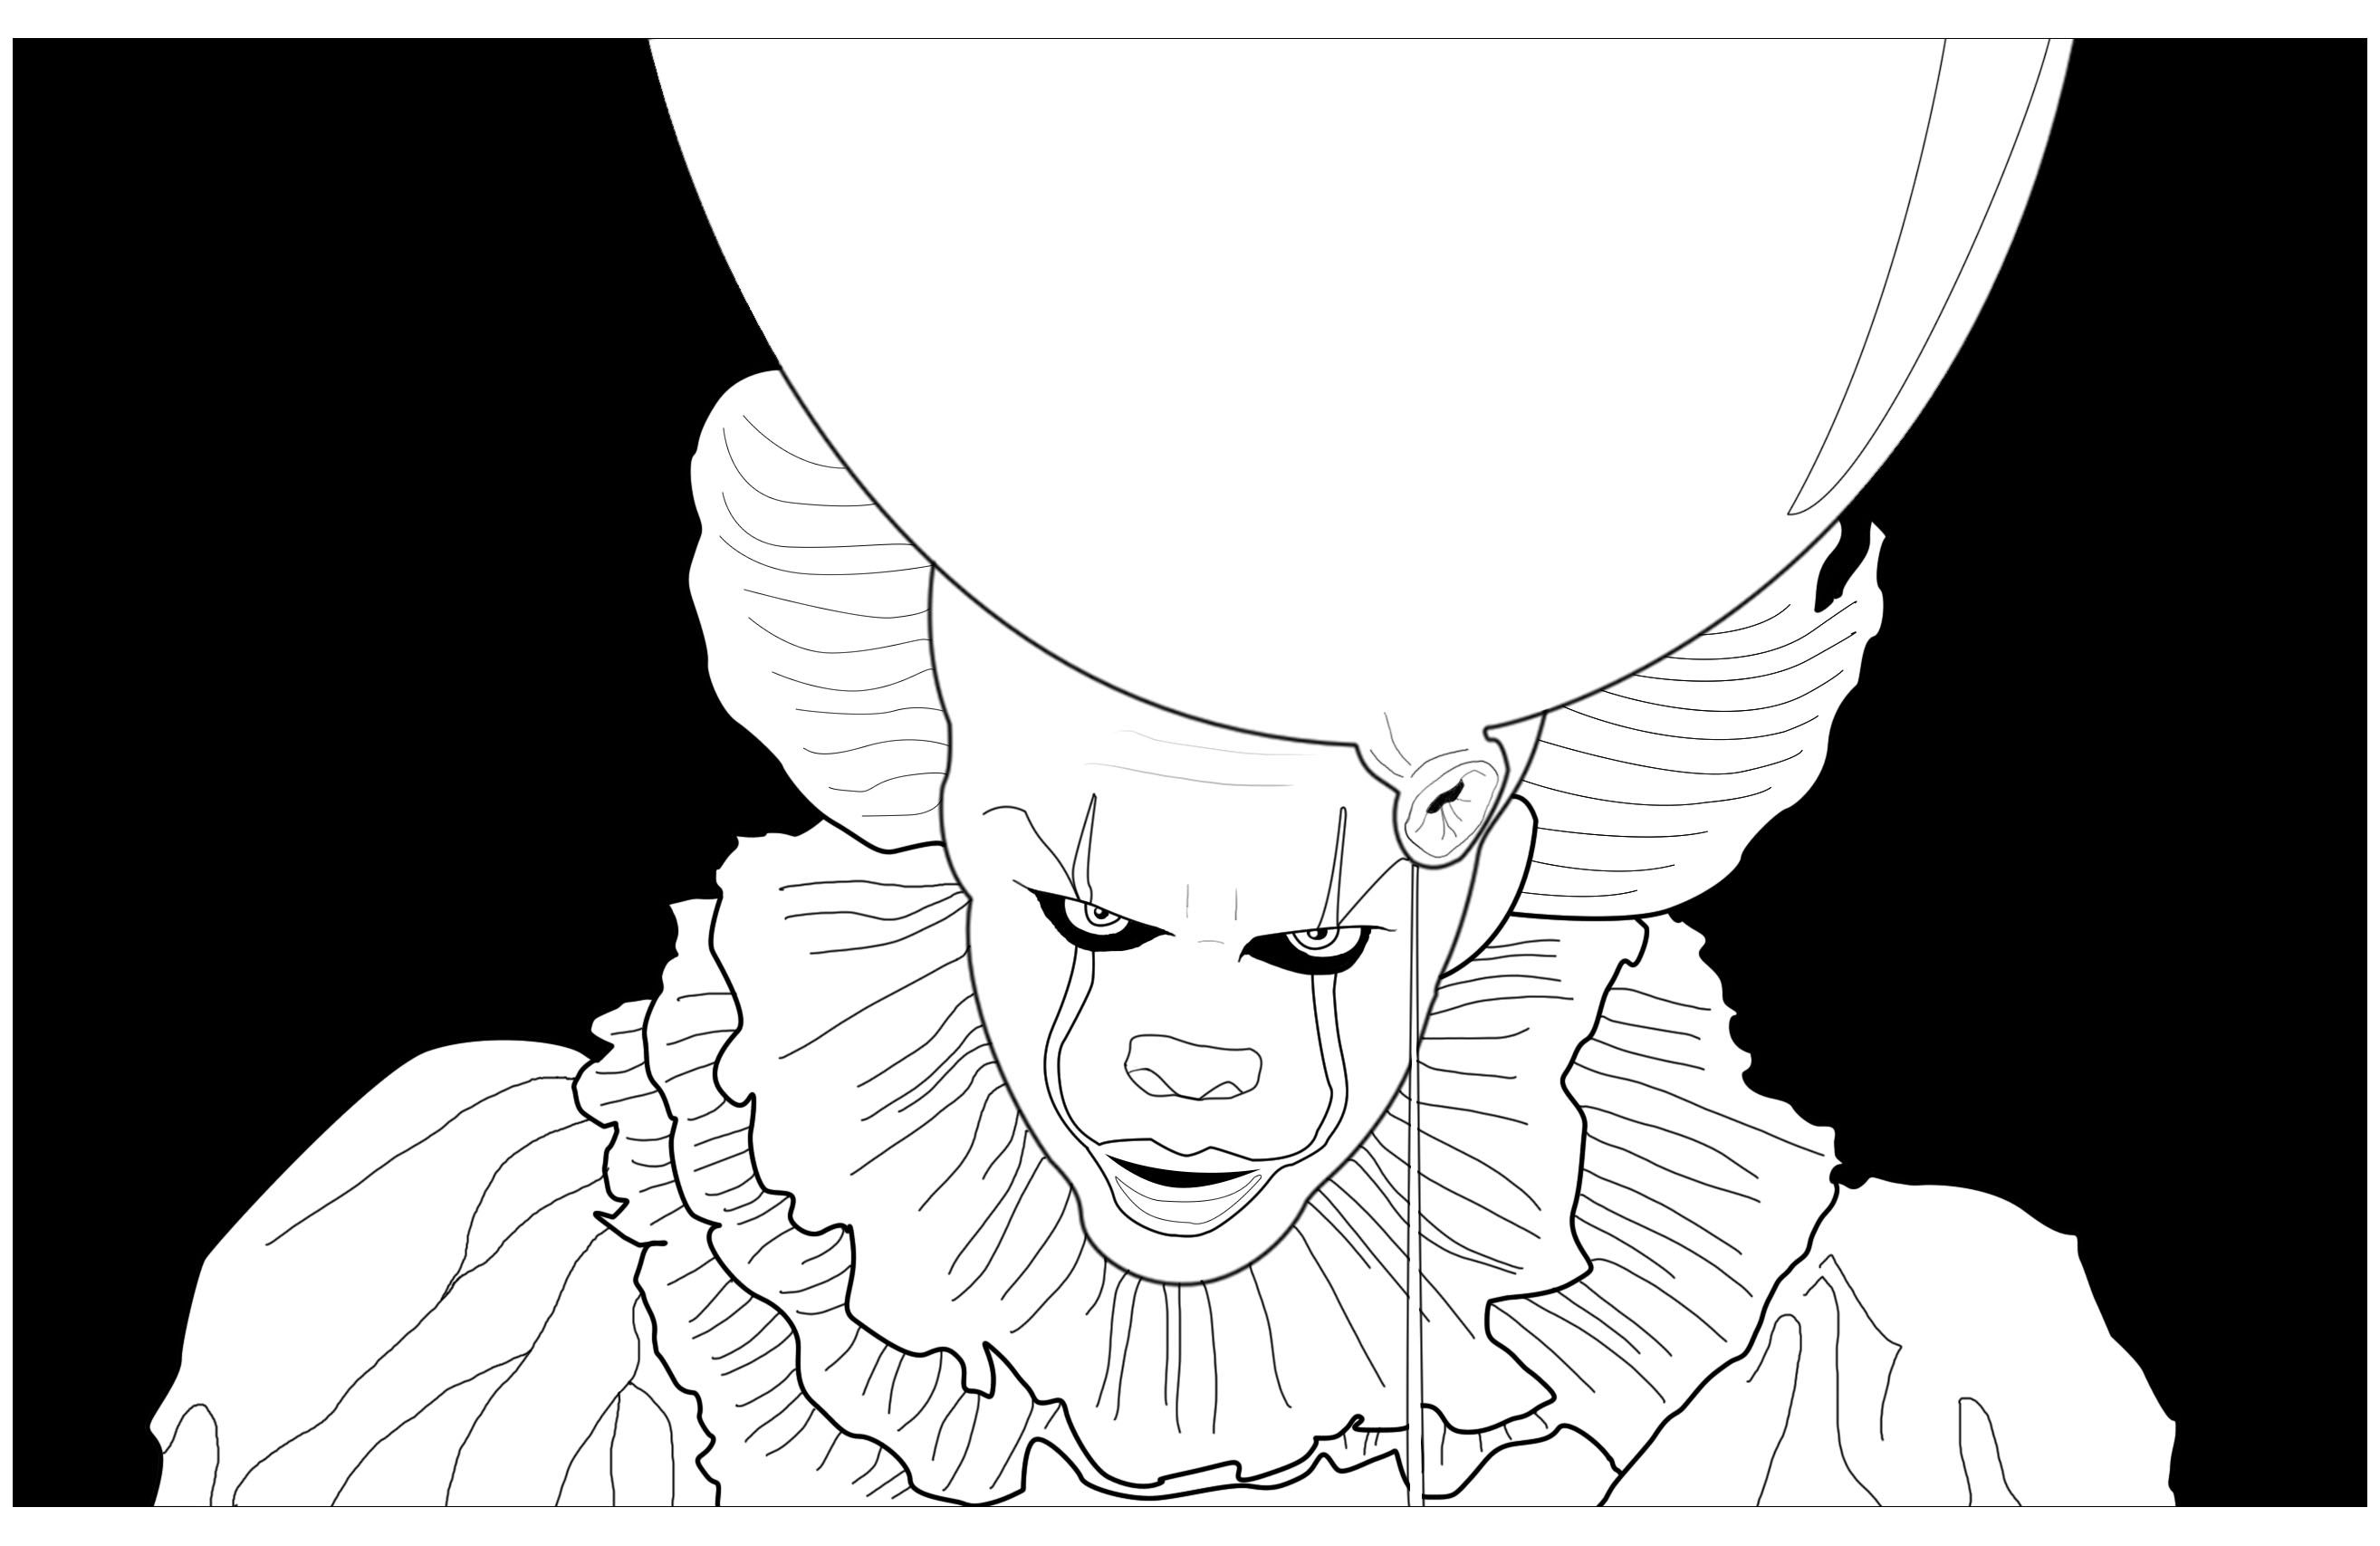 Image Result For Pennywise Coloring Sheet Halloween Coloring Pages Coloring Pages Halloween Coloring